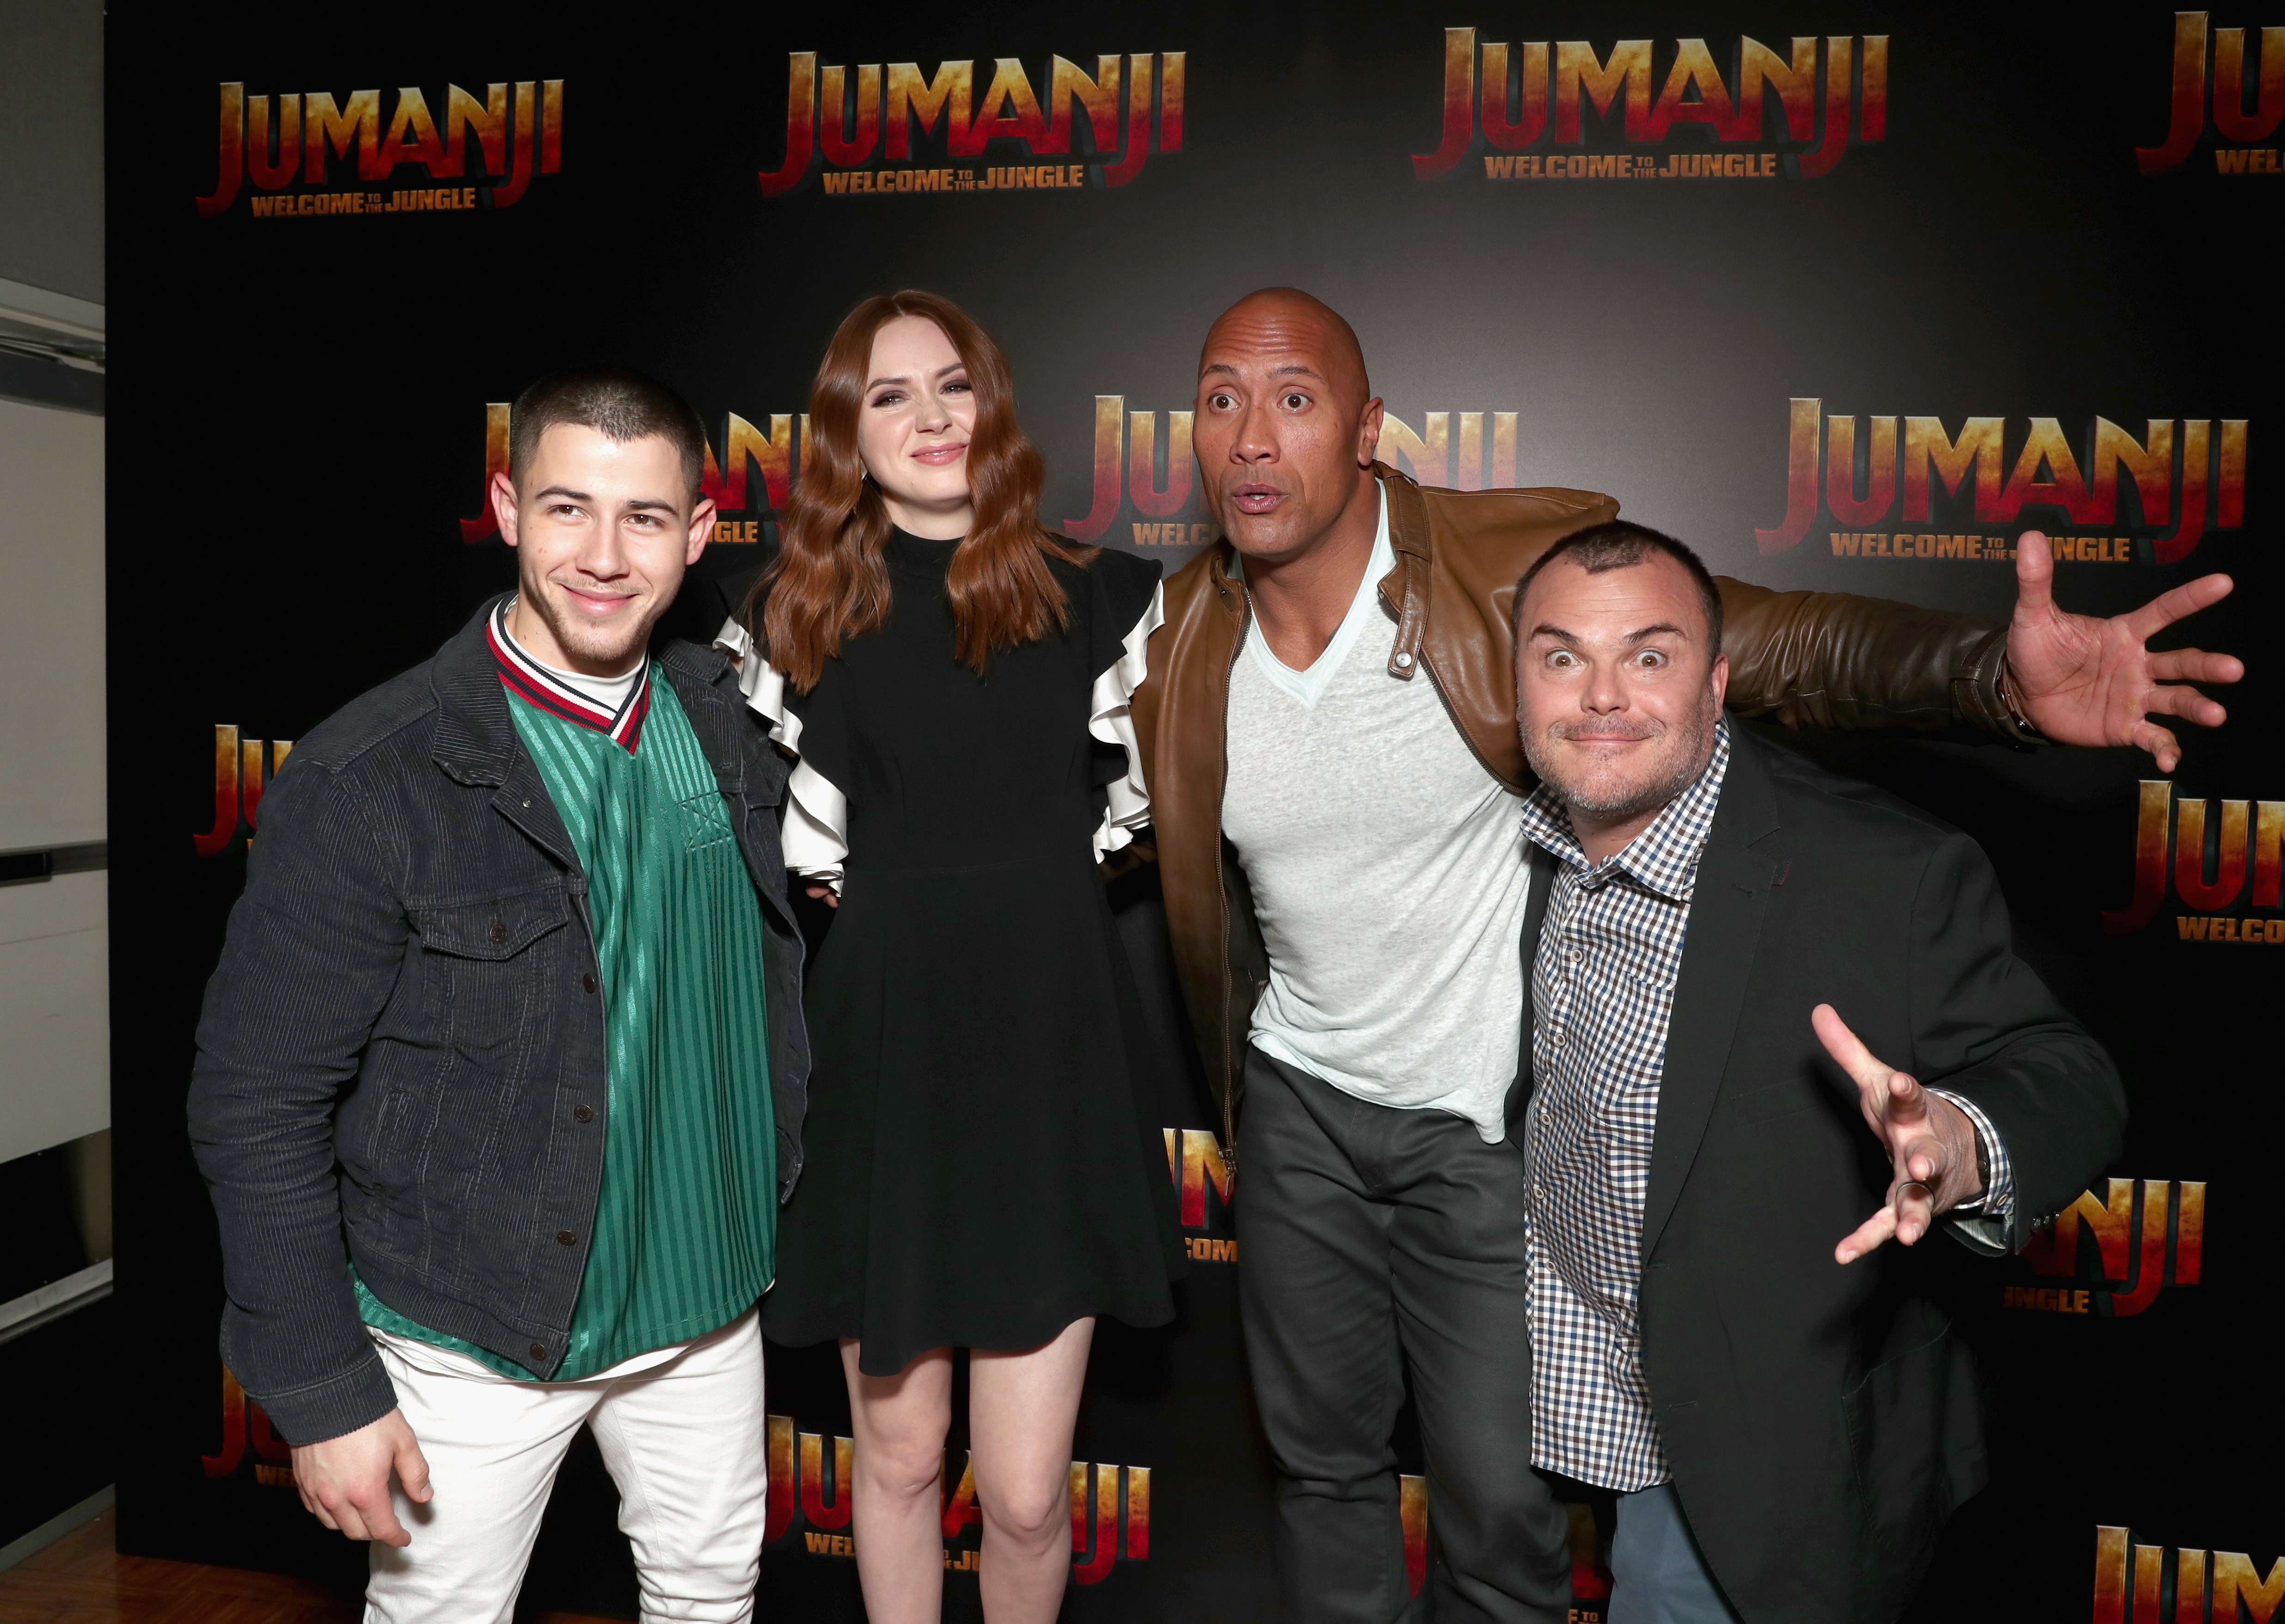 Actors Nick Jonas, Karen Gillan, Dwayne Johnson, and Jack Black during a photo call for Columbia Pictures' JUMANJI: WELCOME TO THE JUNGLE at Caesars Palace during CinemaCon 2017 in Las Vegas, Nevada.